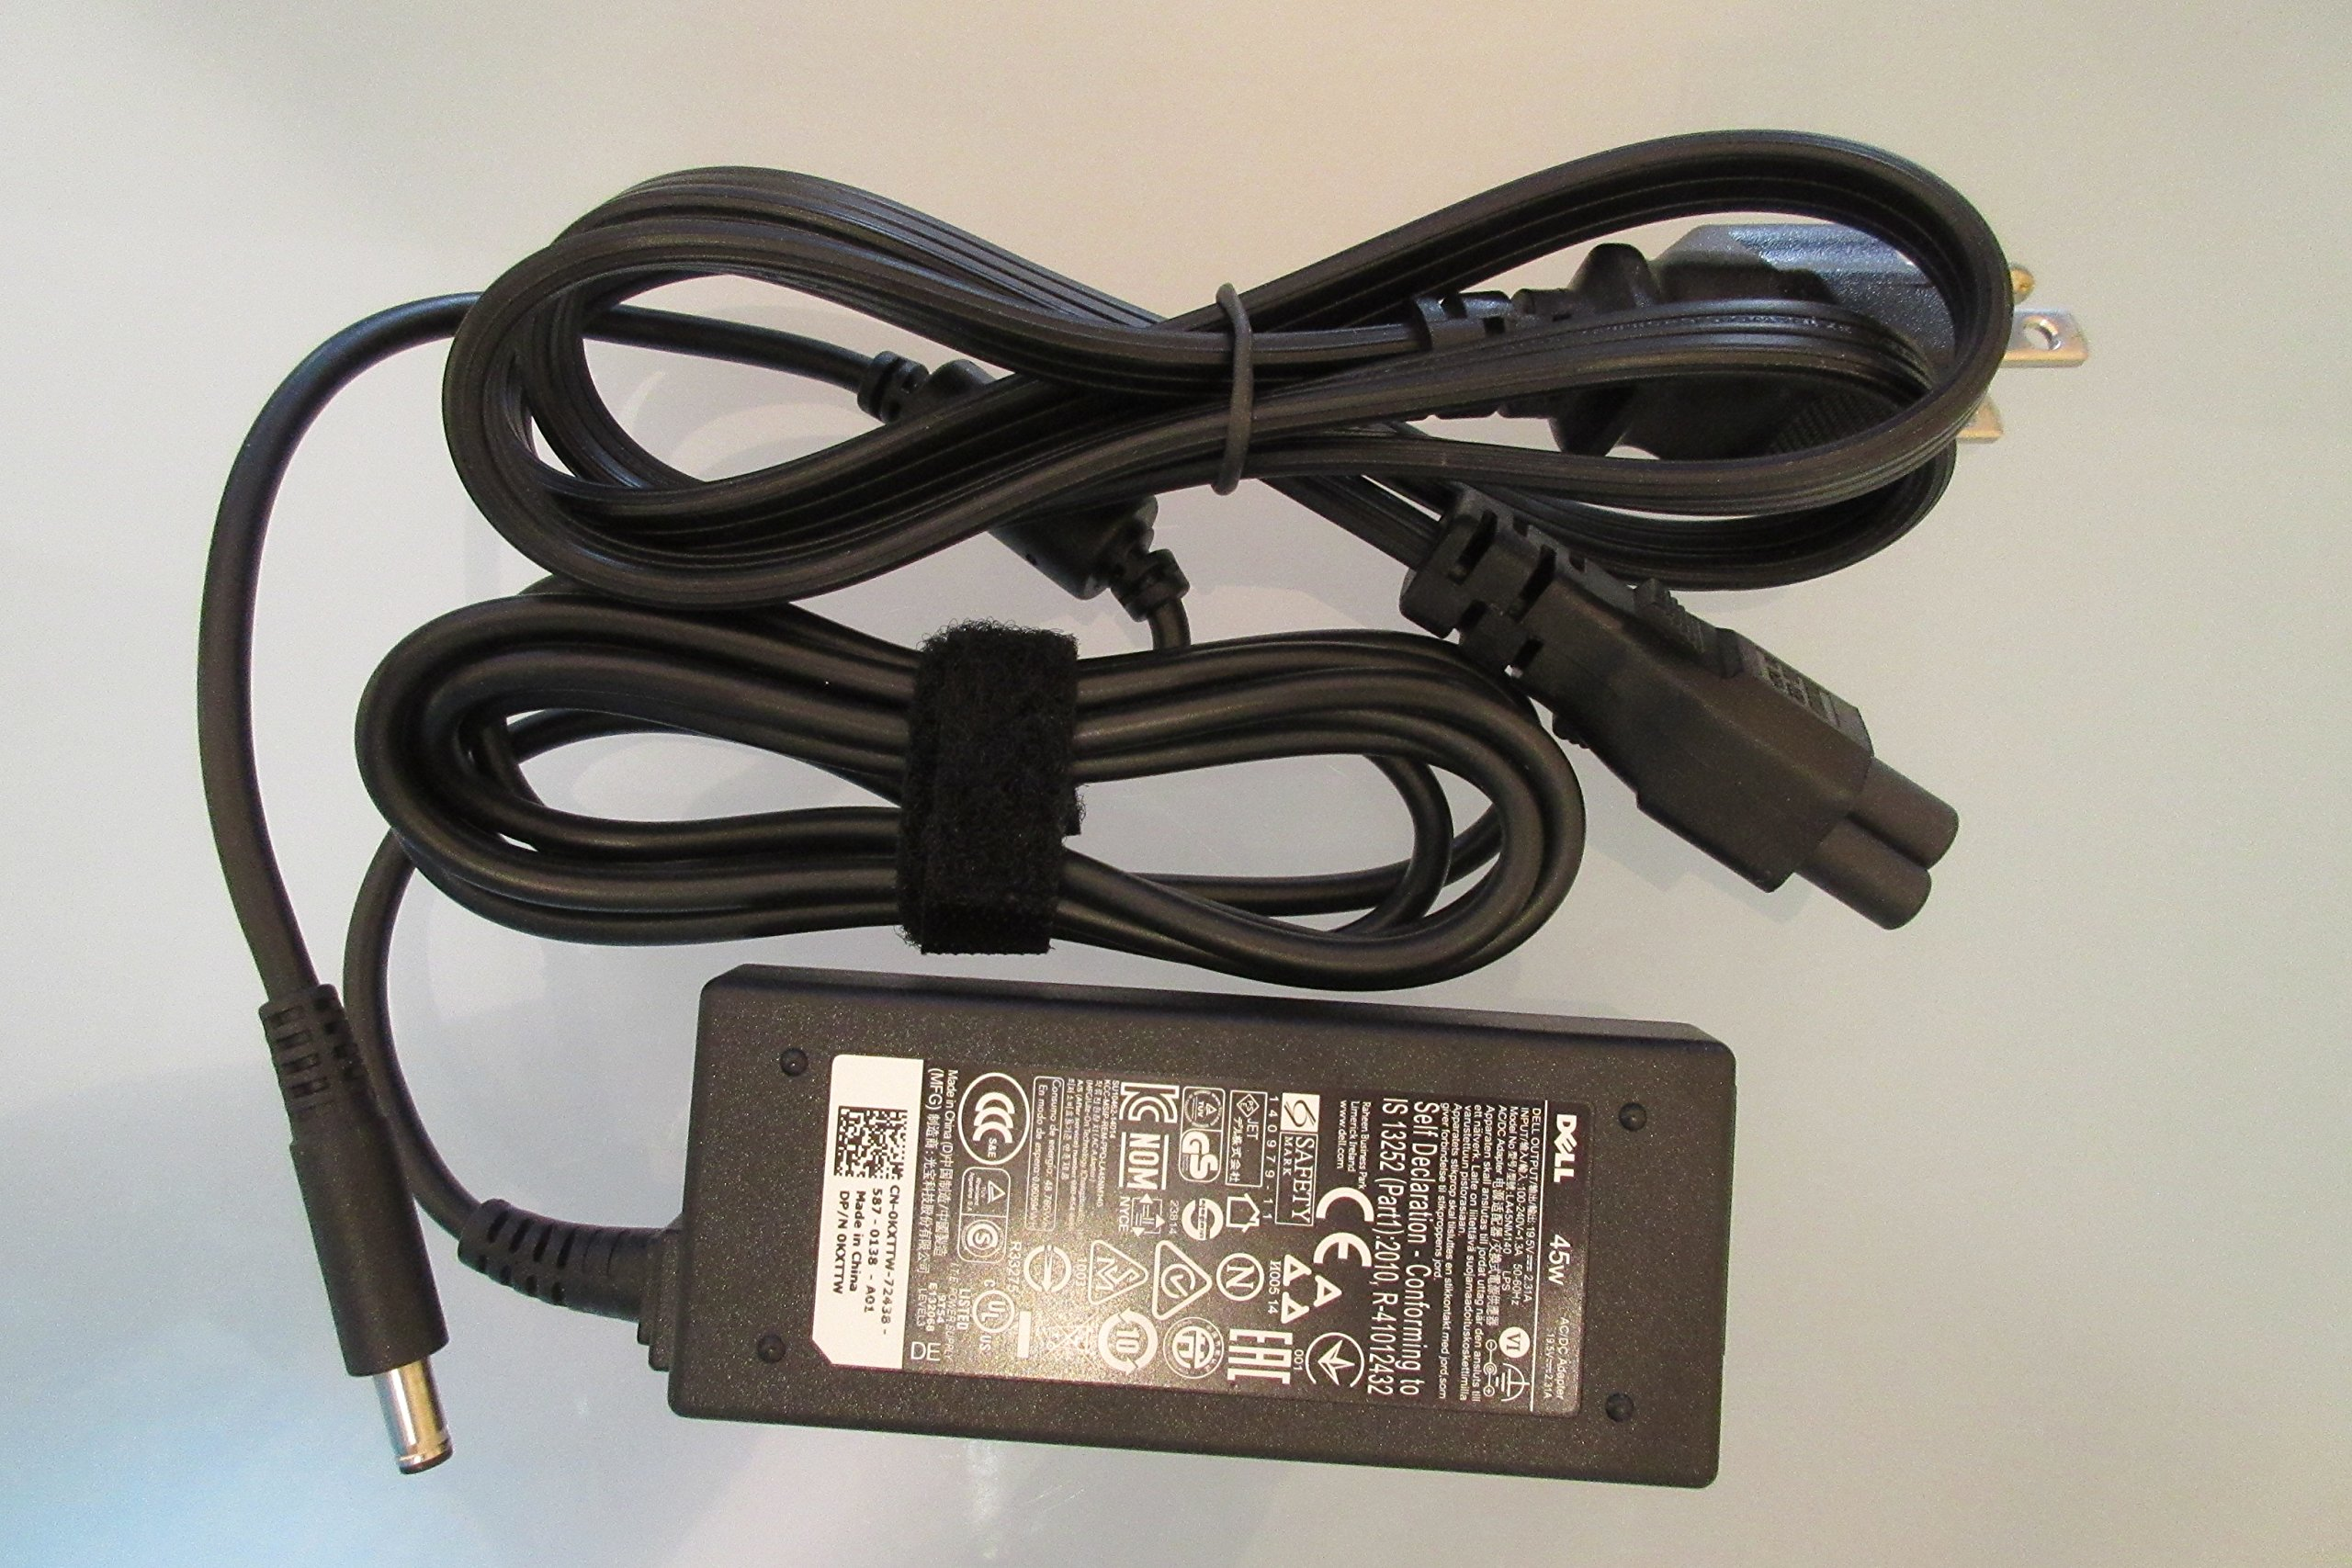 45W 19.5V 2.37A AC Power Adapter Charger for DELL Inspiron 15 Series 5551 5552 5555 new genuine []